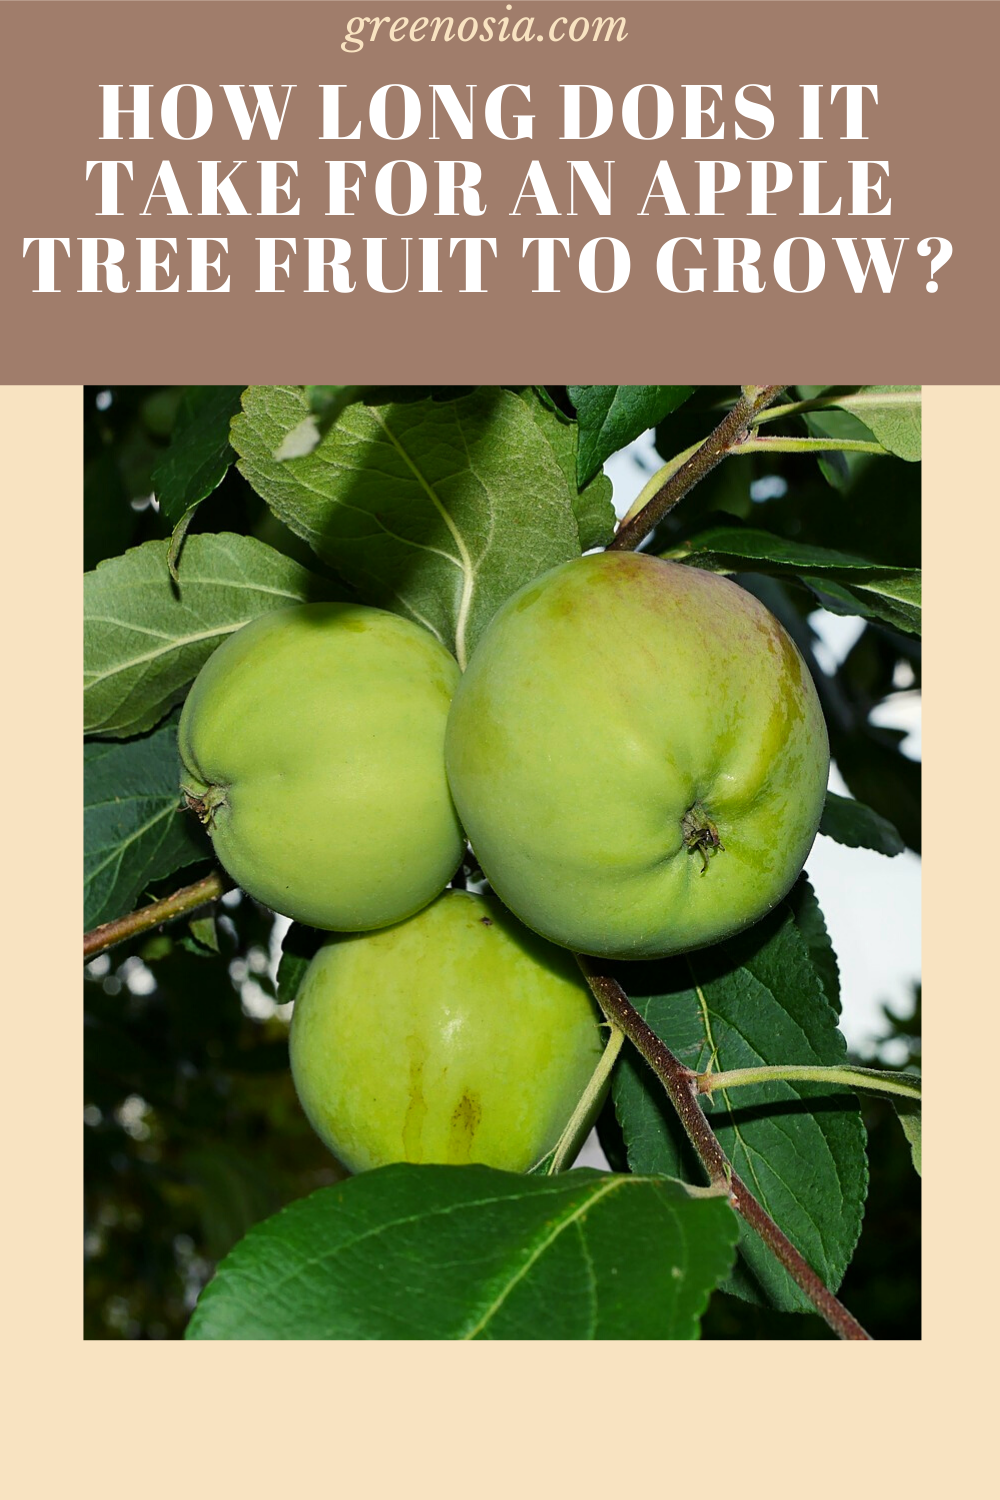 How Long Does It Take For An Apple Tree Fruit To Grow Apple Tree Apple Apple Plant